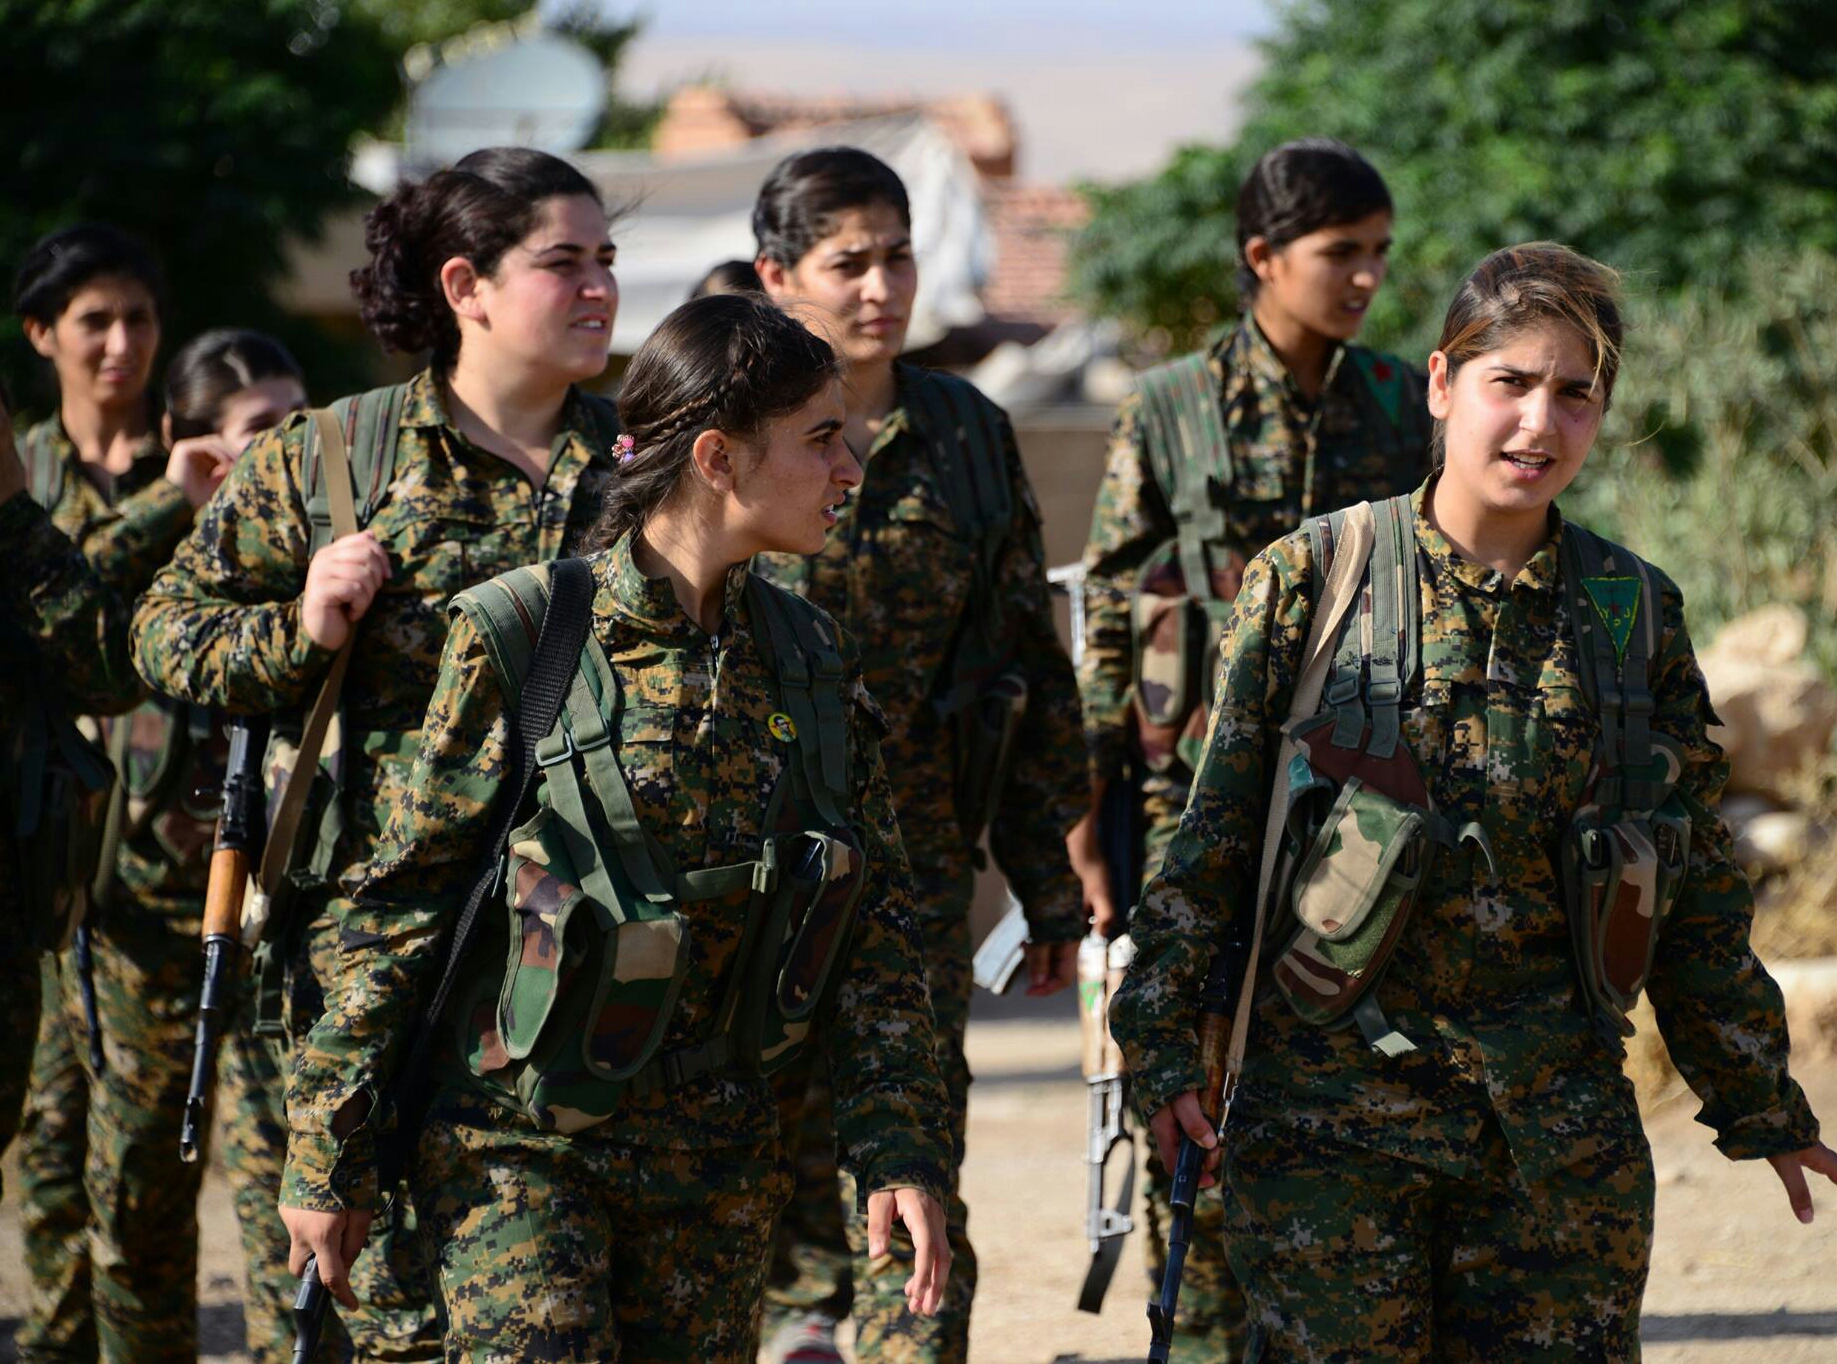 Combattantes kurdes Source: https://fr.wikipedia.org/wiki/Fichier:YPJ_fighters_3.jpg